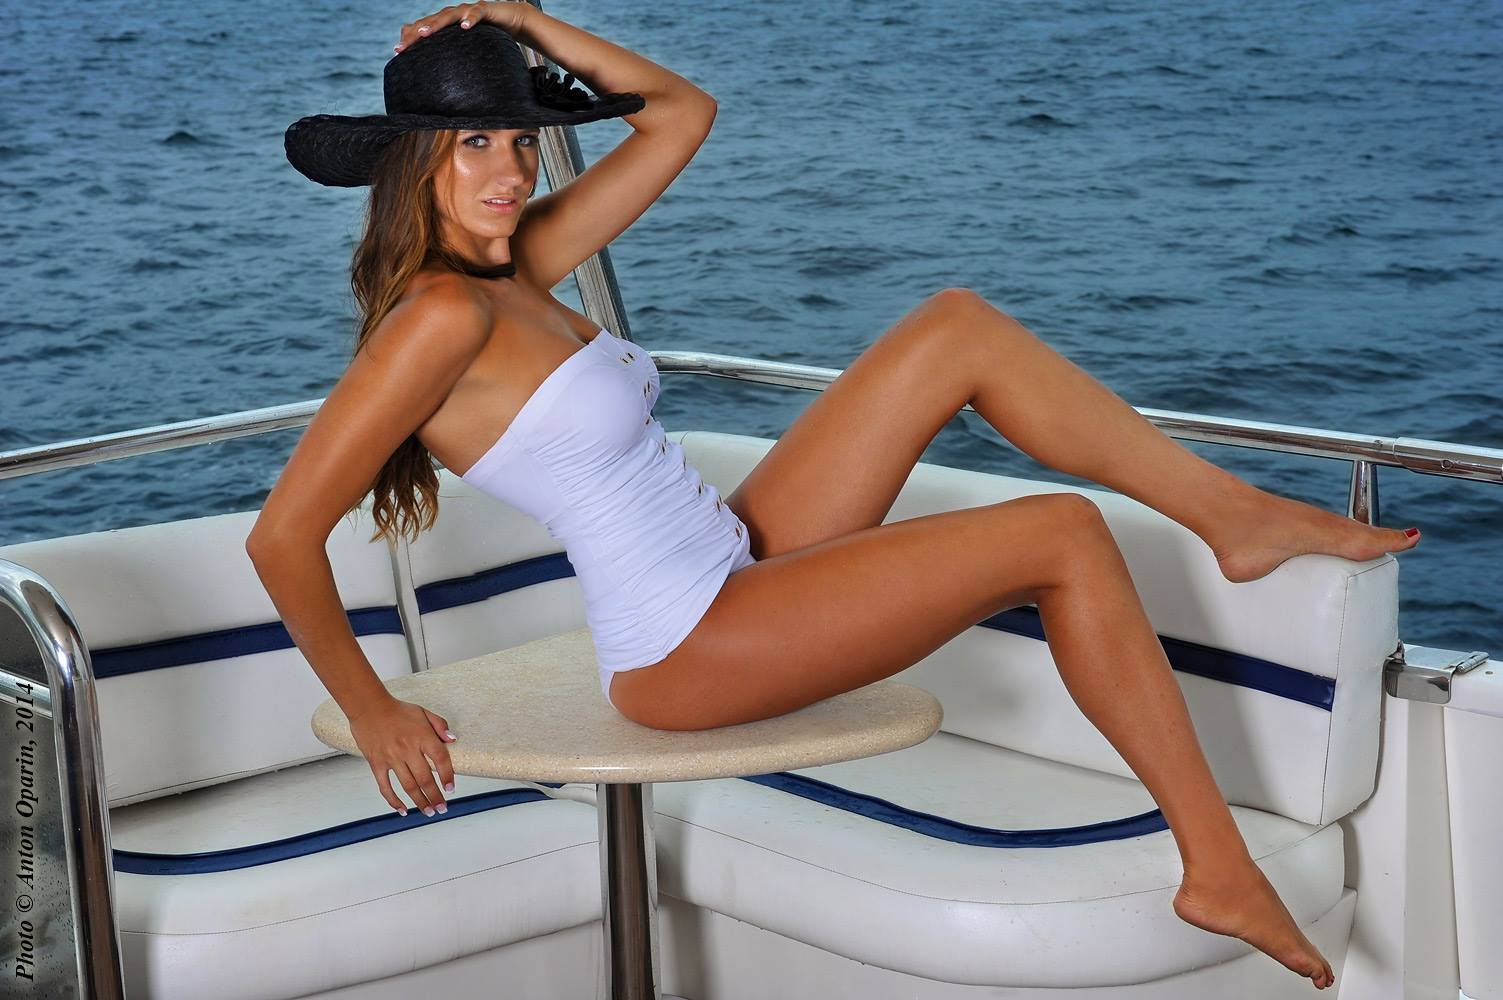 Fashion Editorial Swimsuit Photoshoot on the Luxury Boat